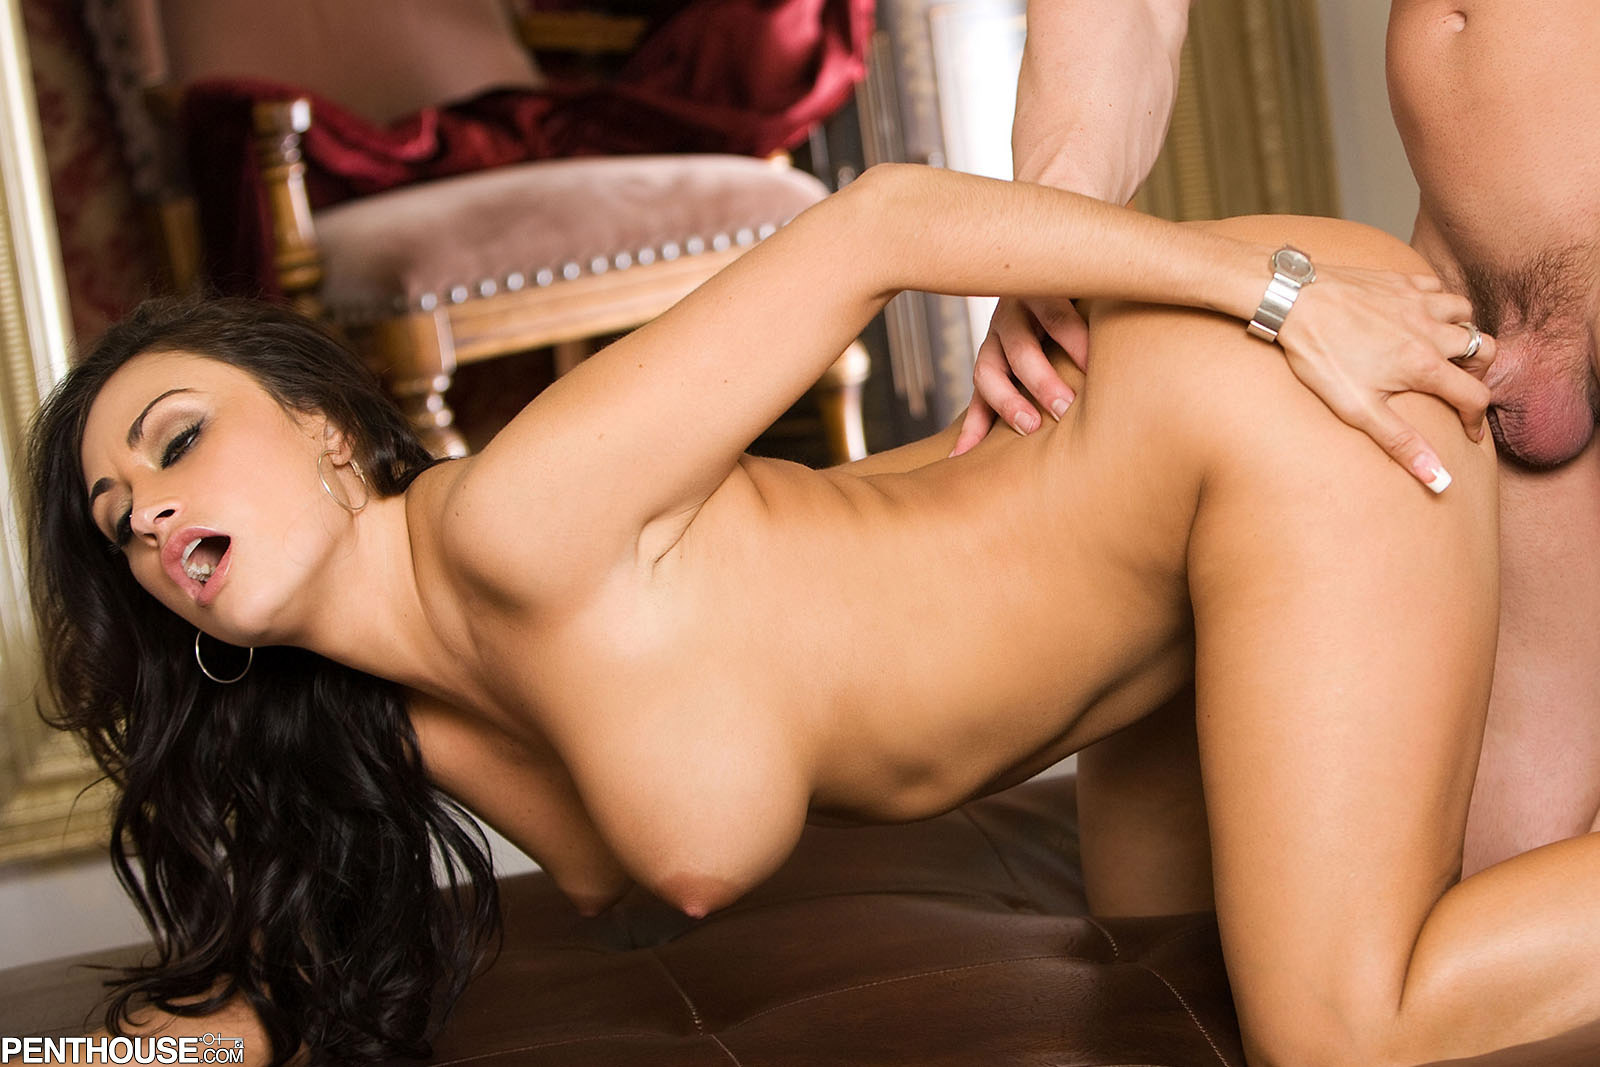 image Asa akira gets fucked on top of a caged sophia santi